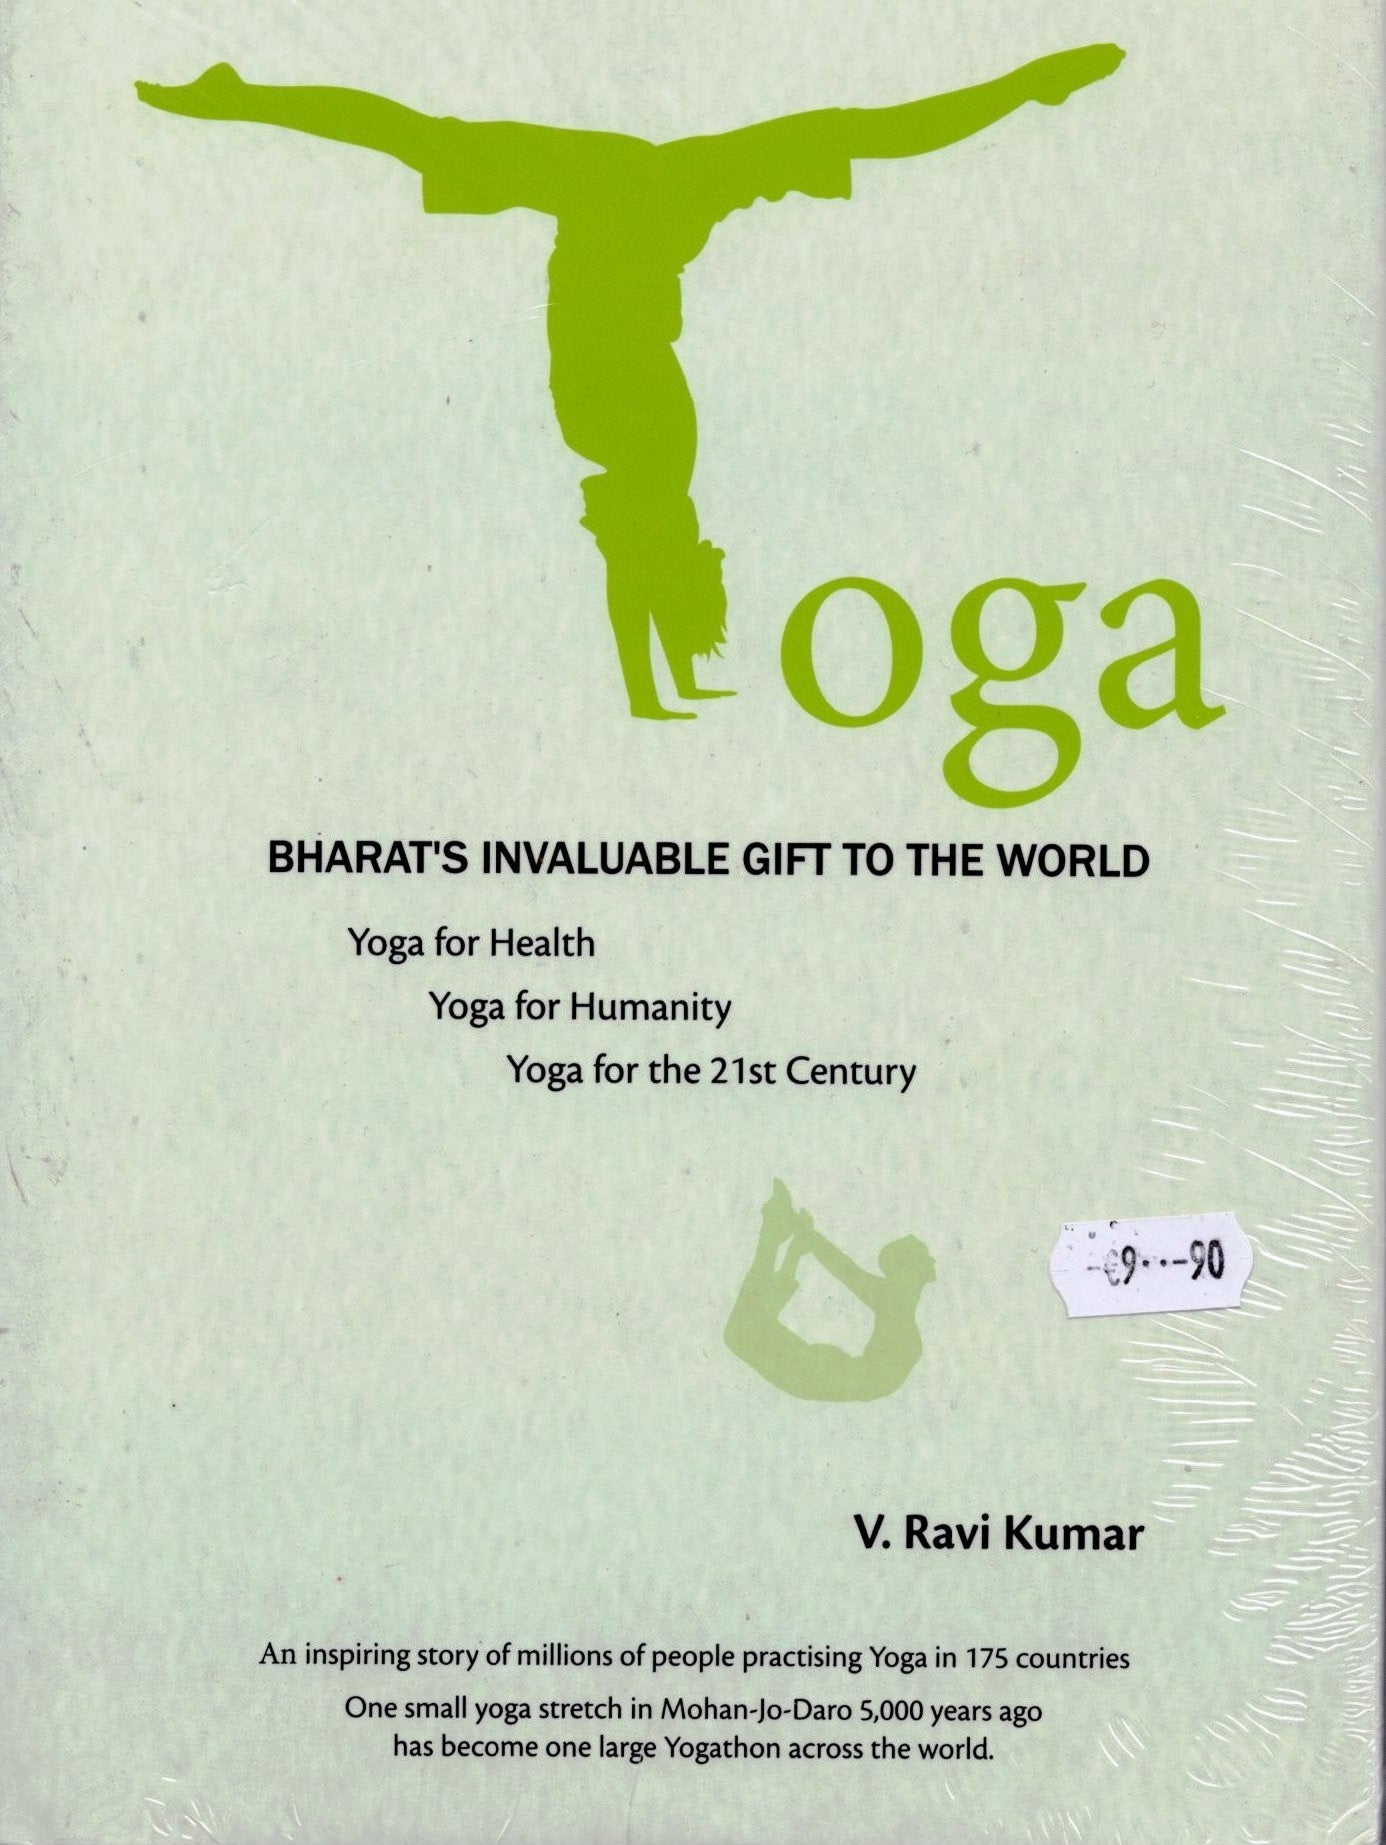 Yoga - Bharat's invaluable gift to the world